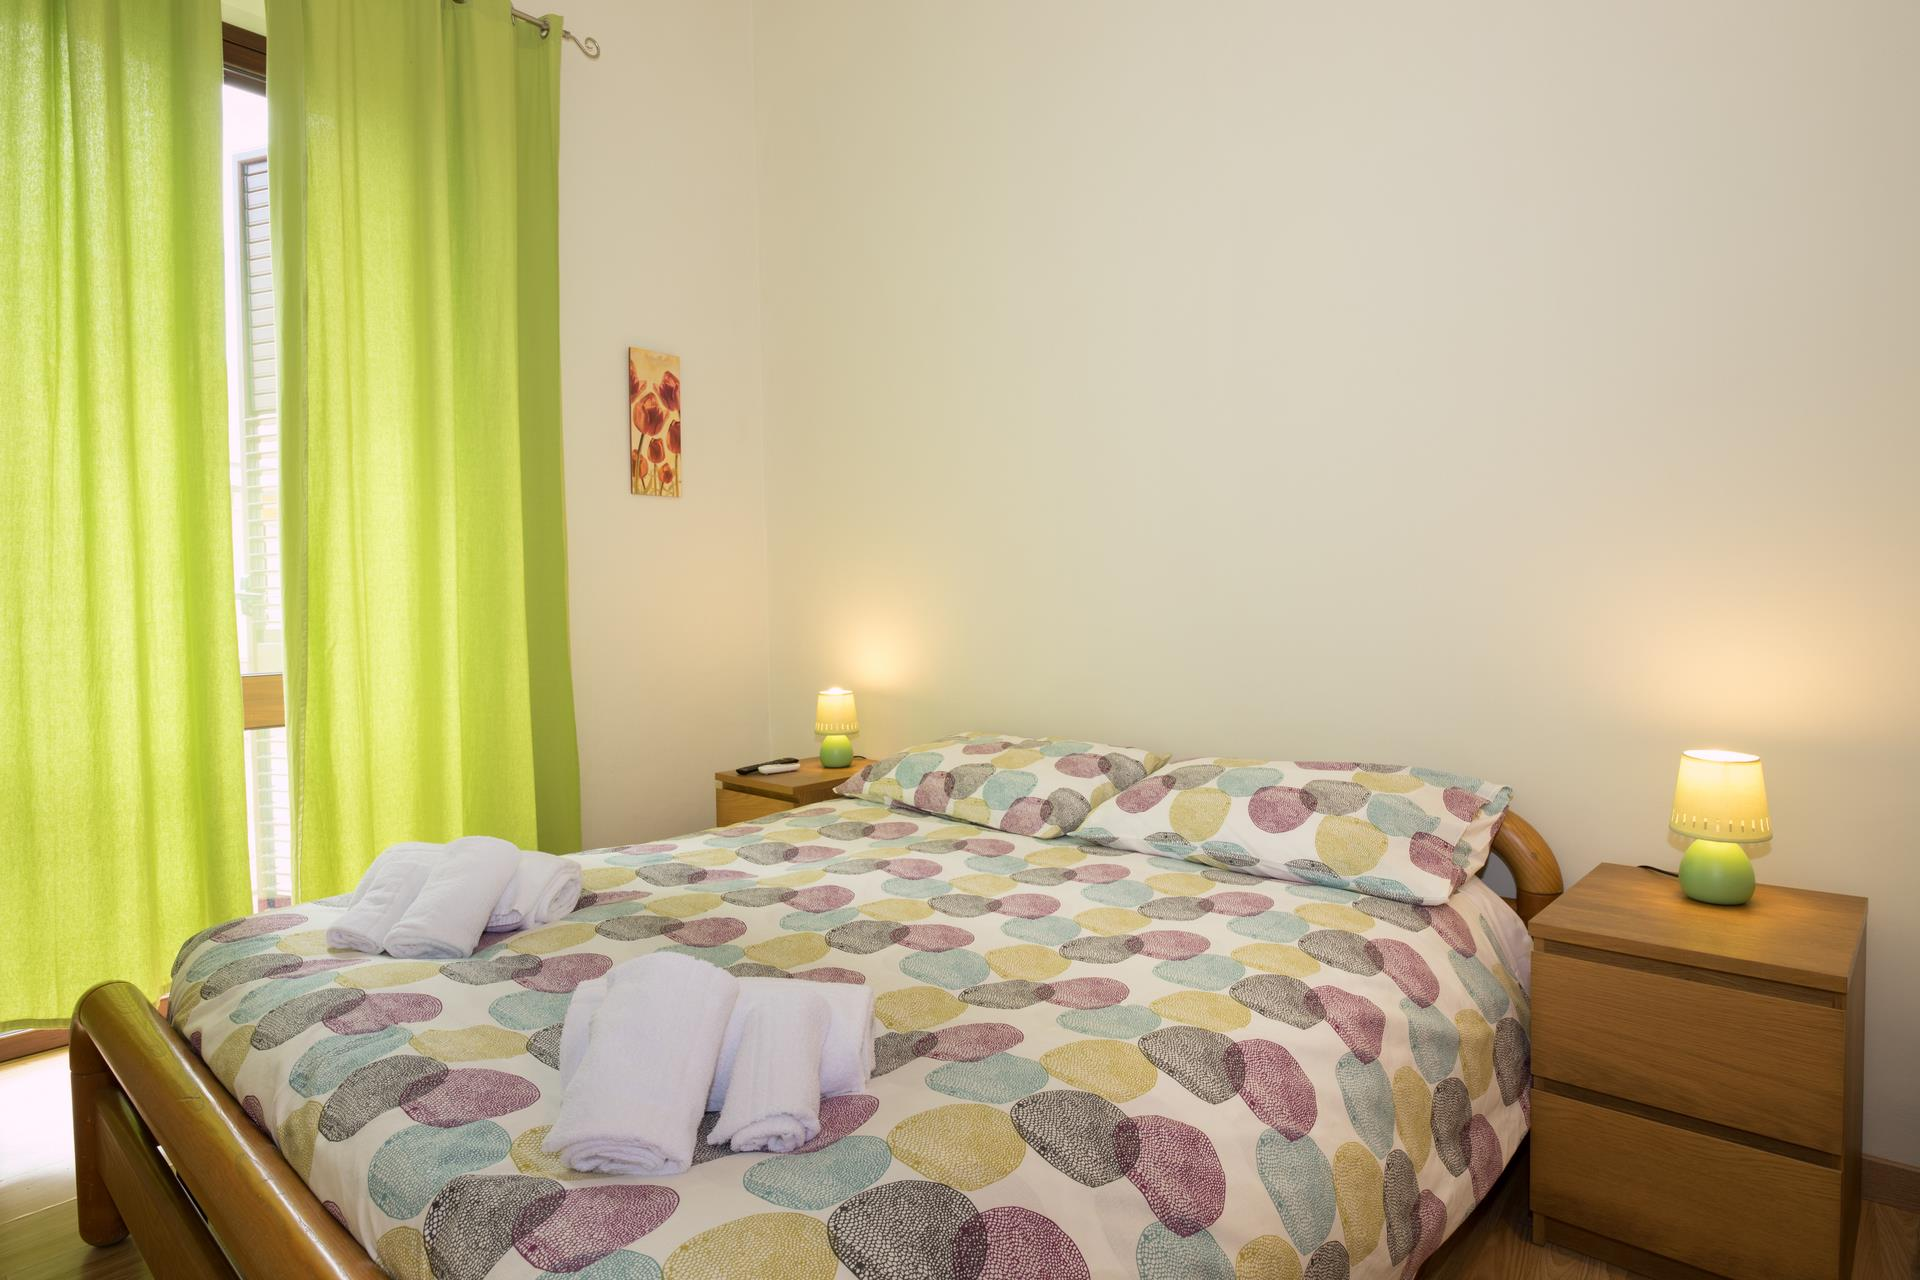 Apartment Apt E - Wellness House Galilei 9 sleeps photo 18685036